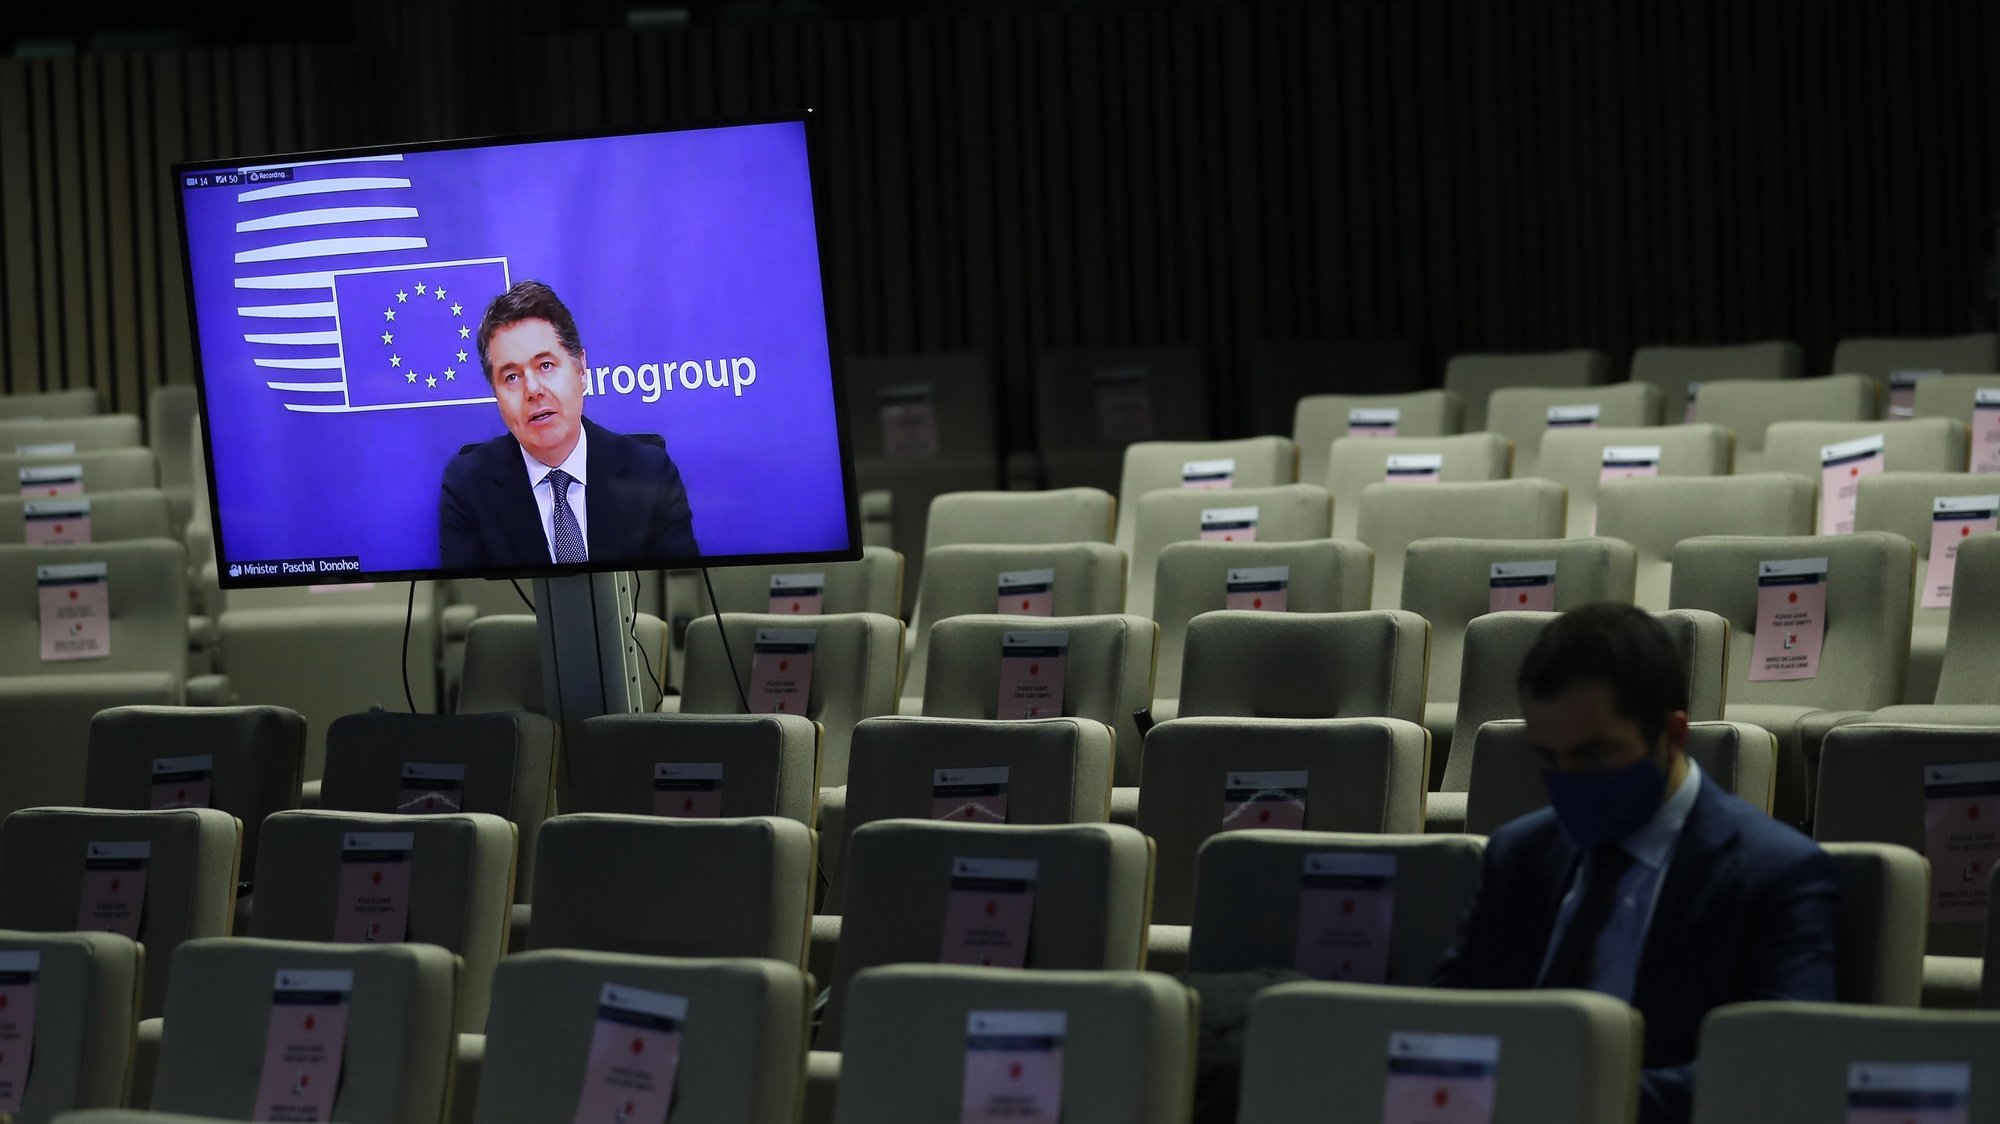 epa08853715 Eurogroup president Paschal Donohoe, on the screen, speaks during an online news conference following an Eurogroup video conference meeting at the European Council headquarters in Brussels, Belgium, 30 November 2020.  EPA/Francisco Seco / POOL